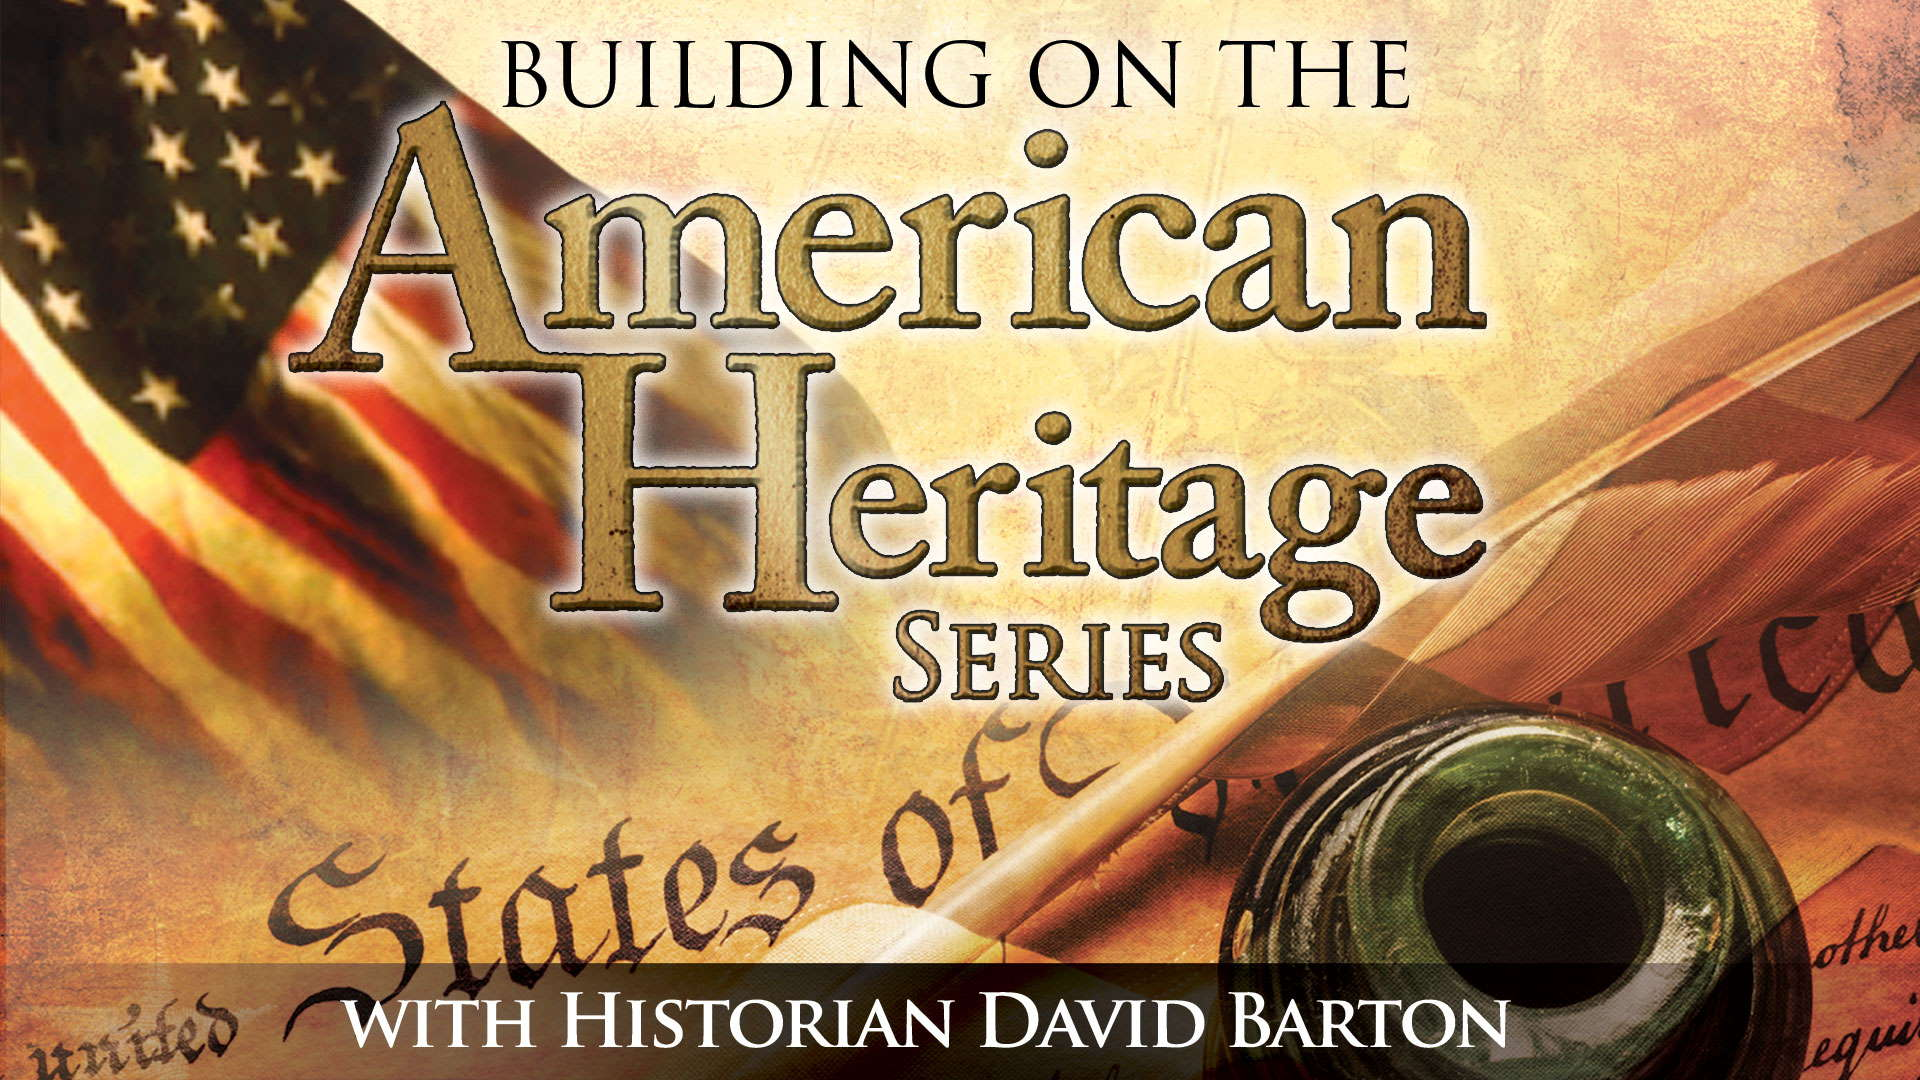 Building on The American Heritage